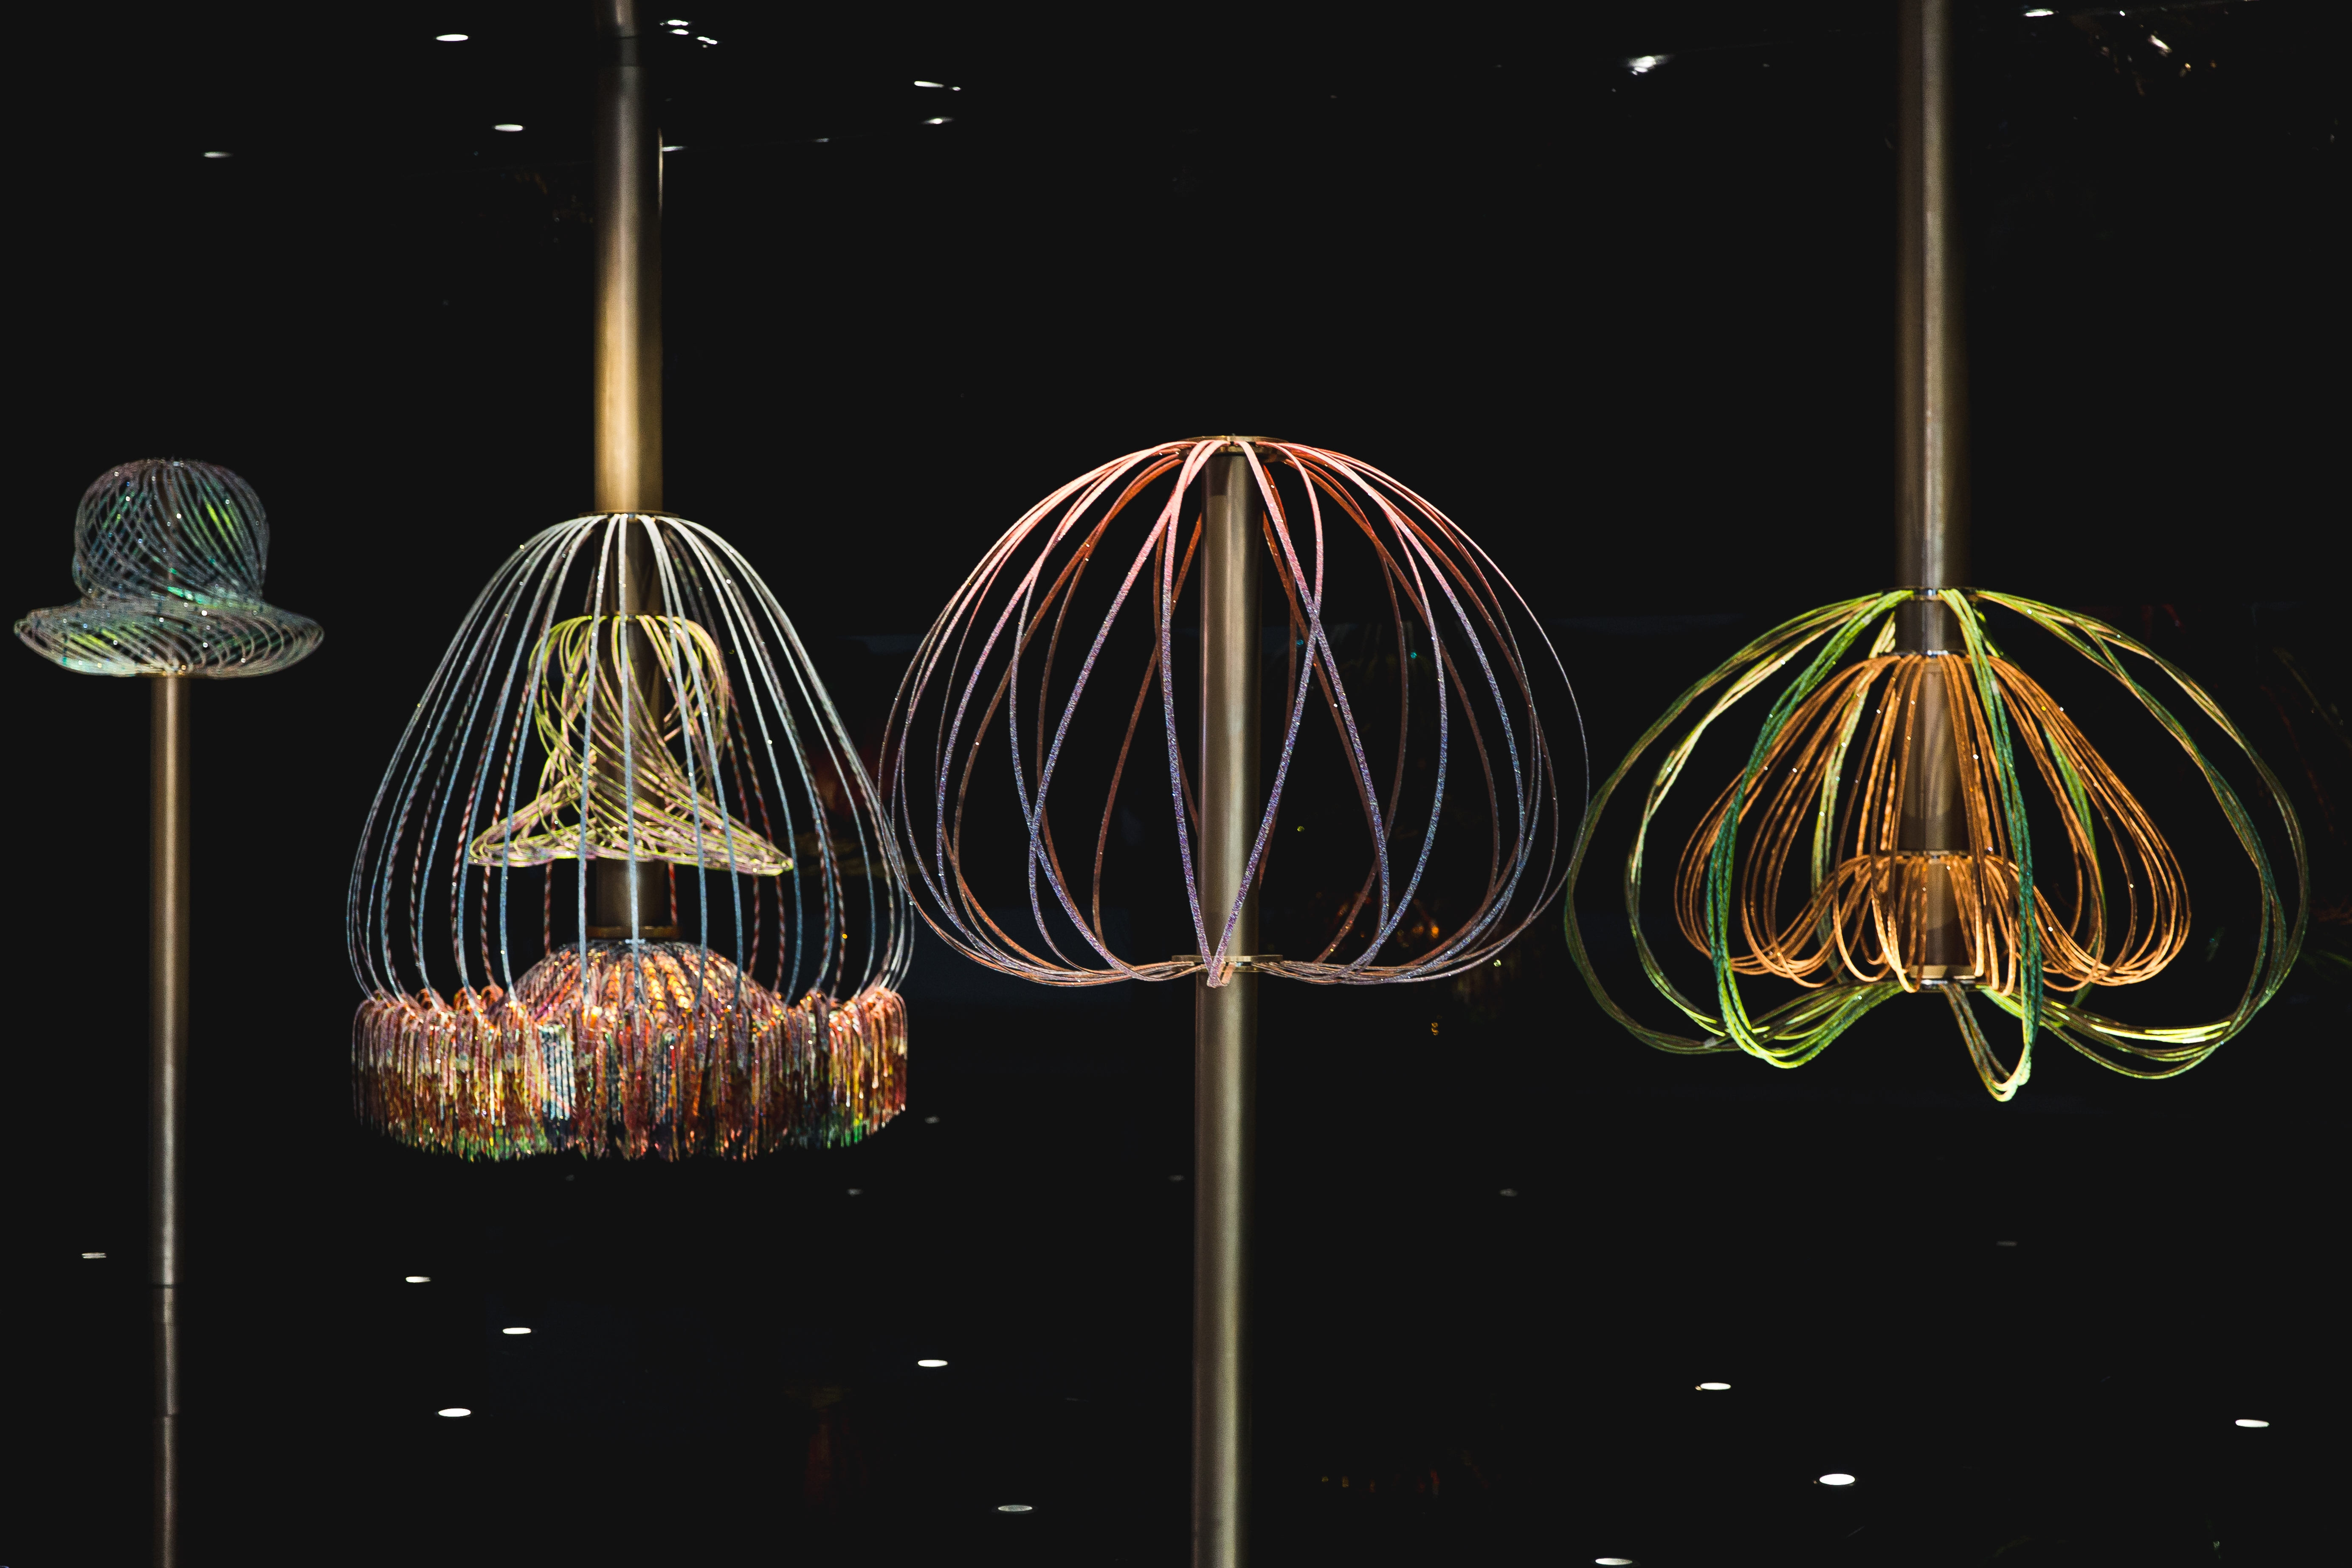 Sundew by Elaine Yan Ling Ng for Swarovski at Art Central 2016 - Image Credit Stanley Cheng c 2016 (1)